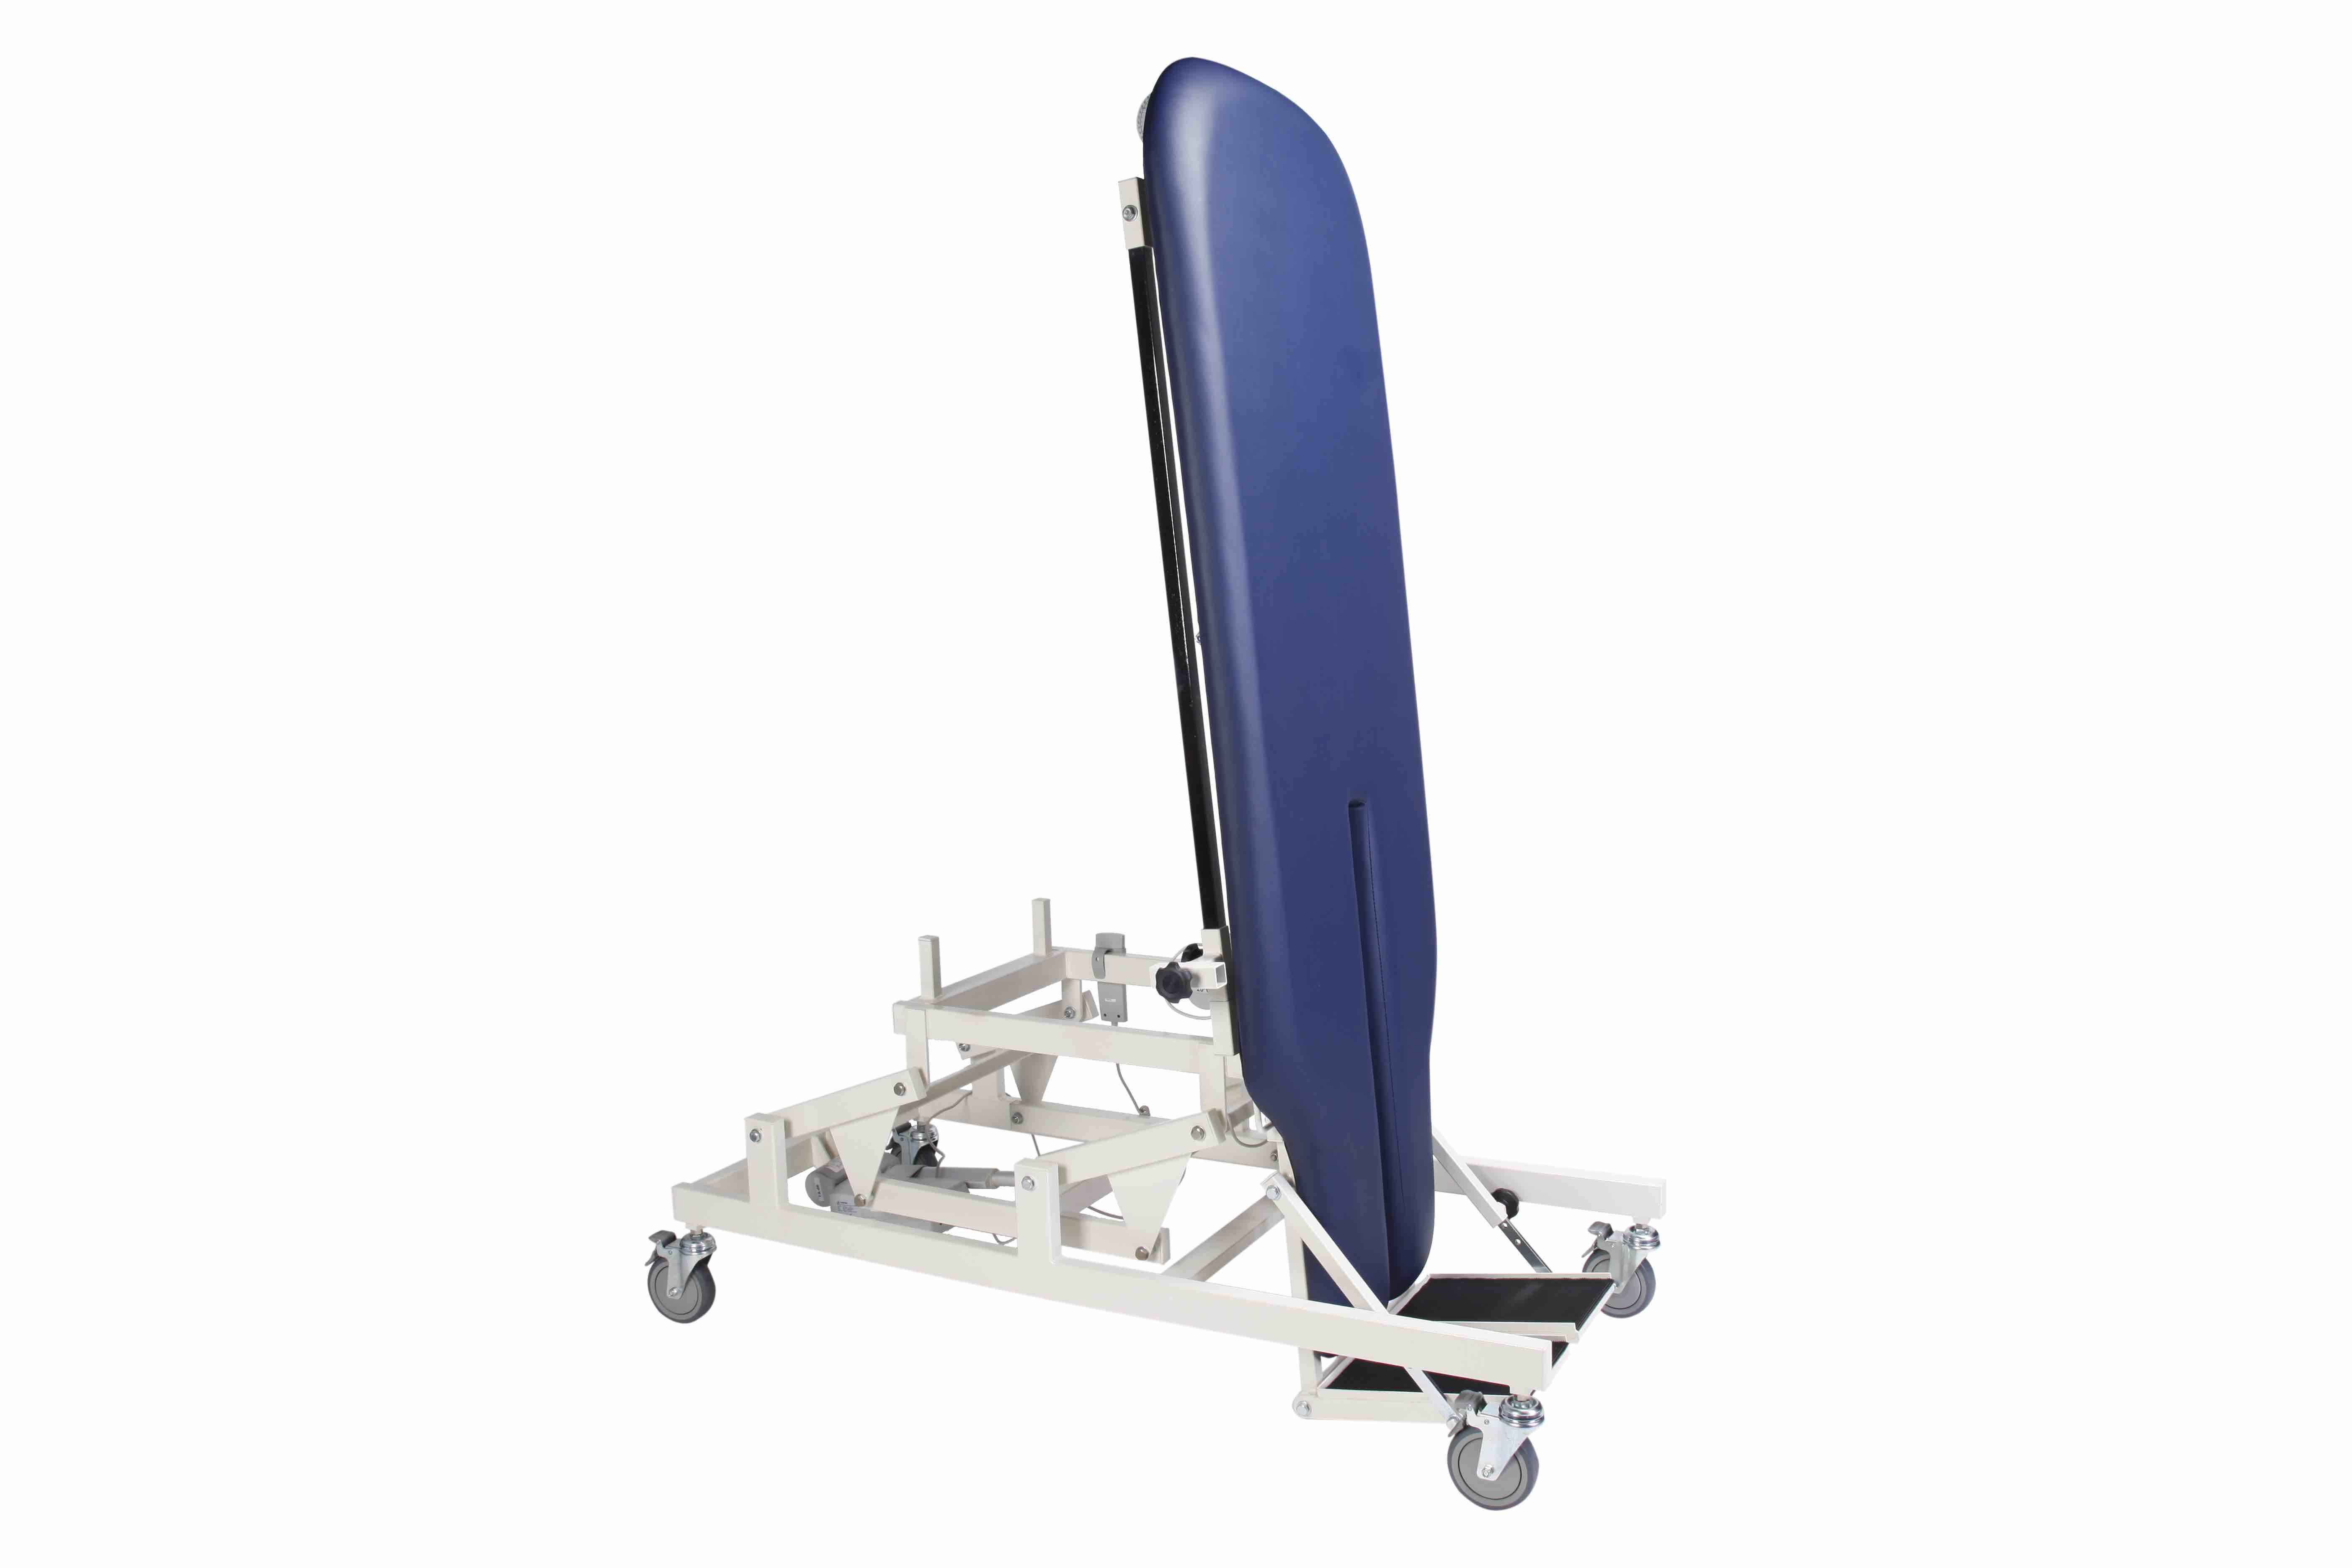 beds the slimming treatment shop productgfx all physiotherapy manual online tilt table for